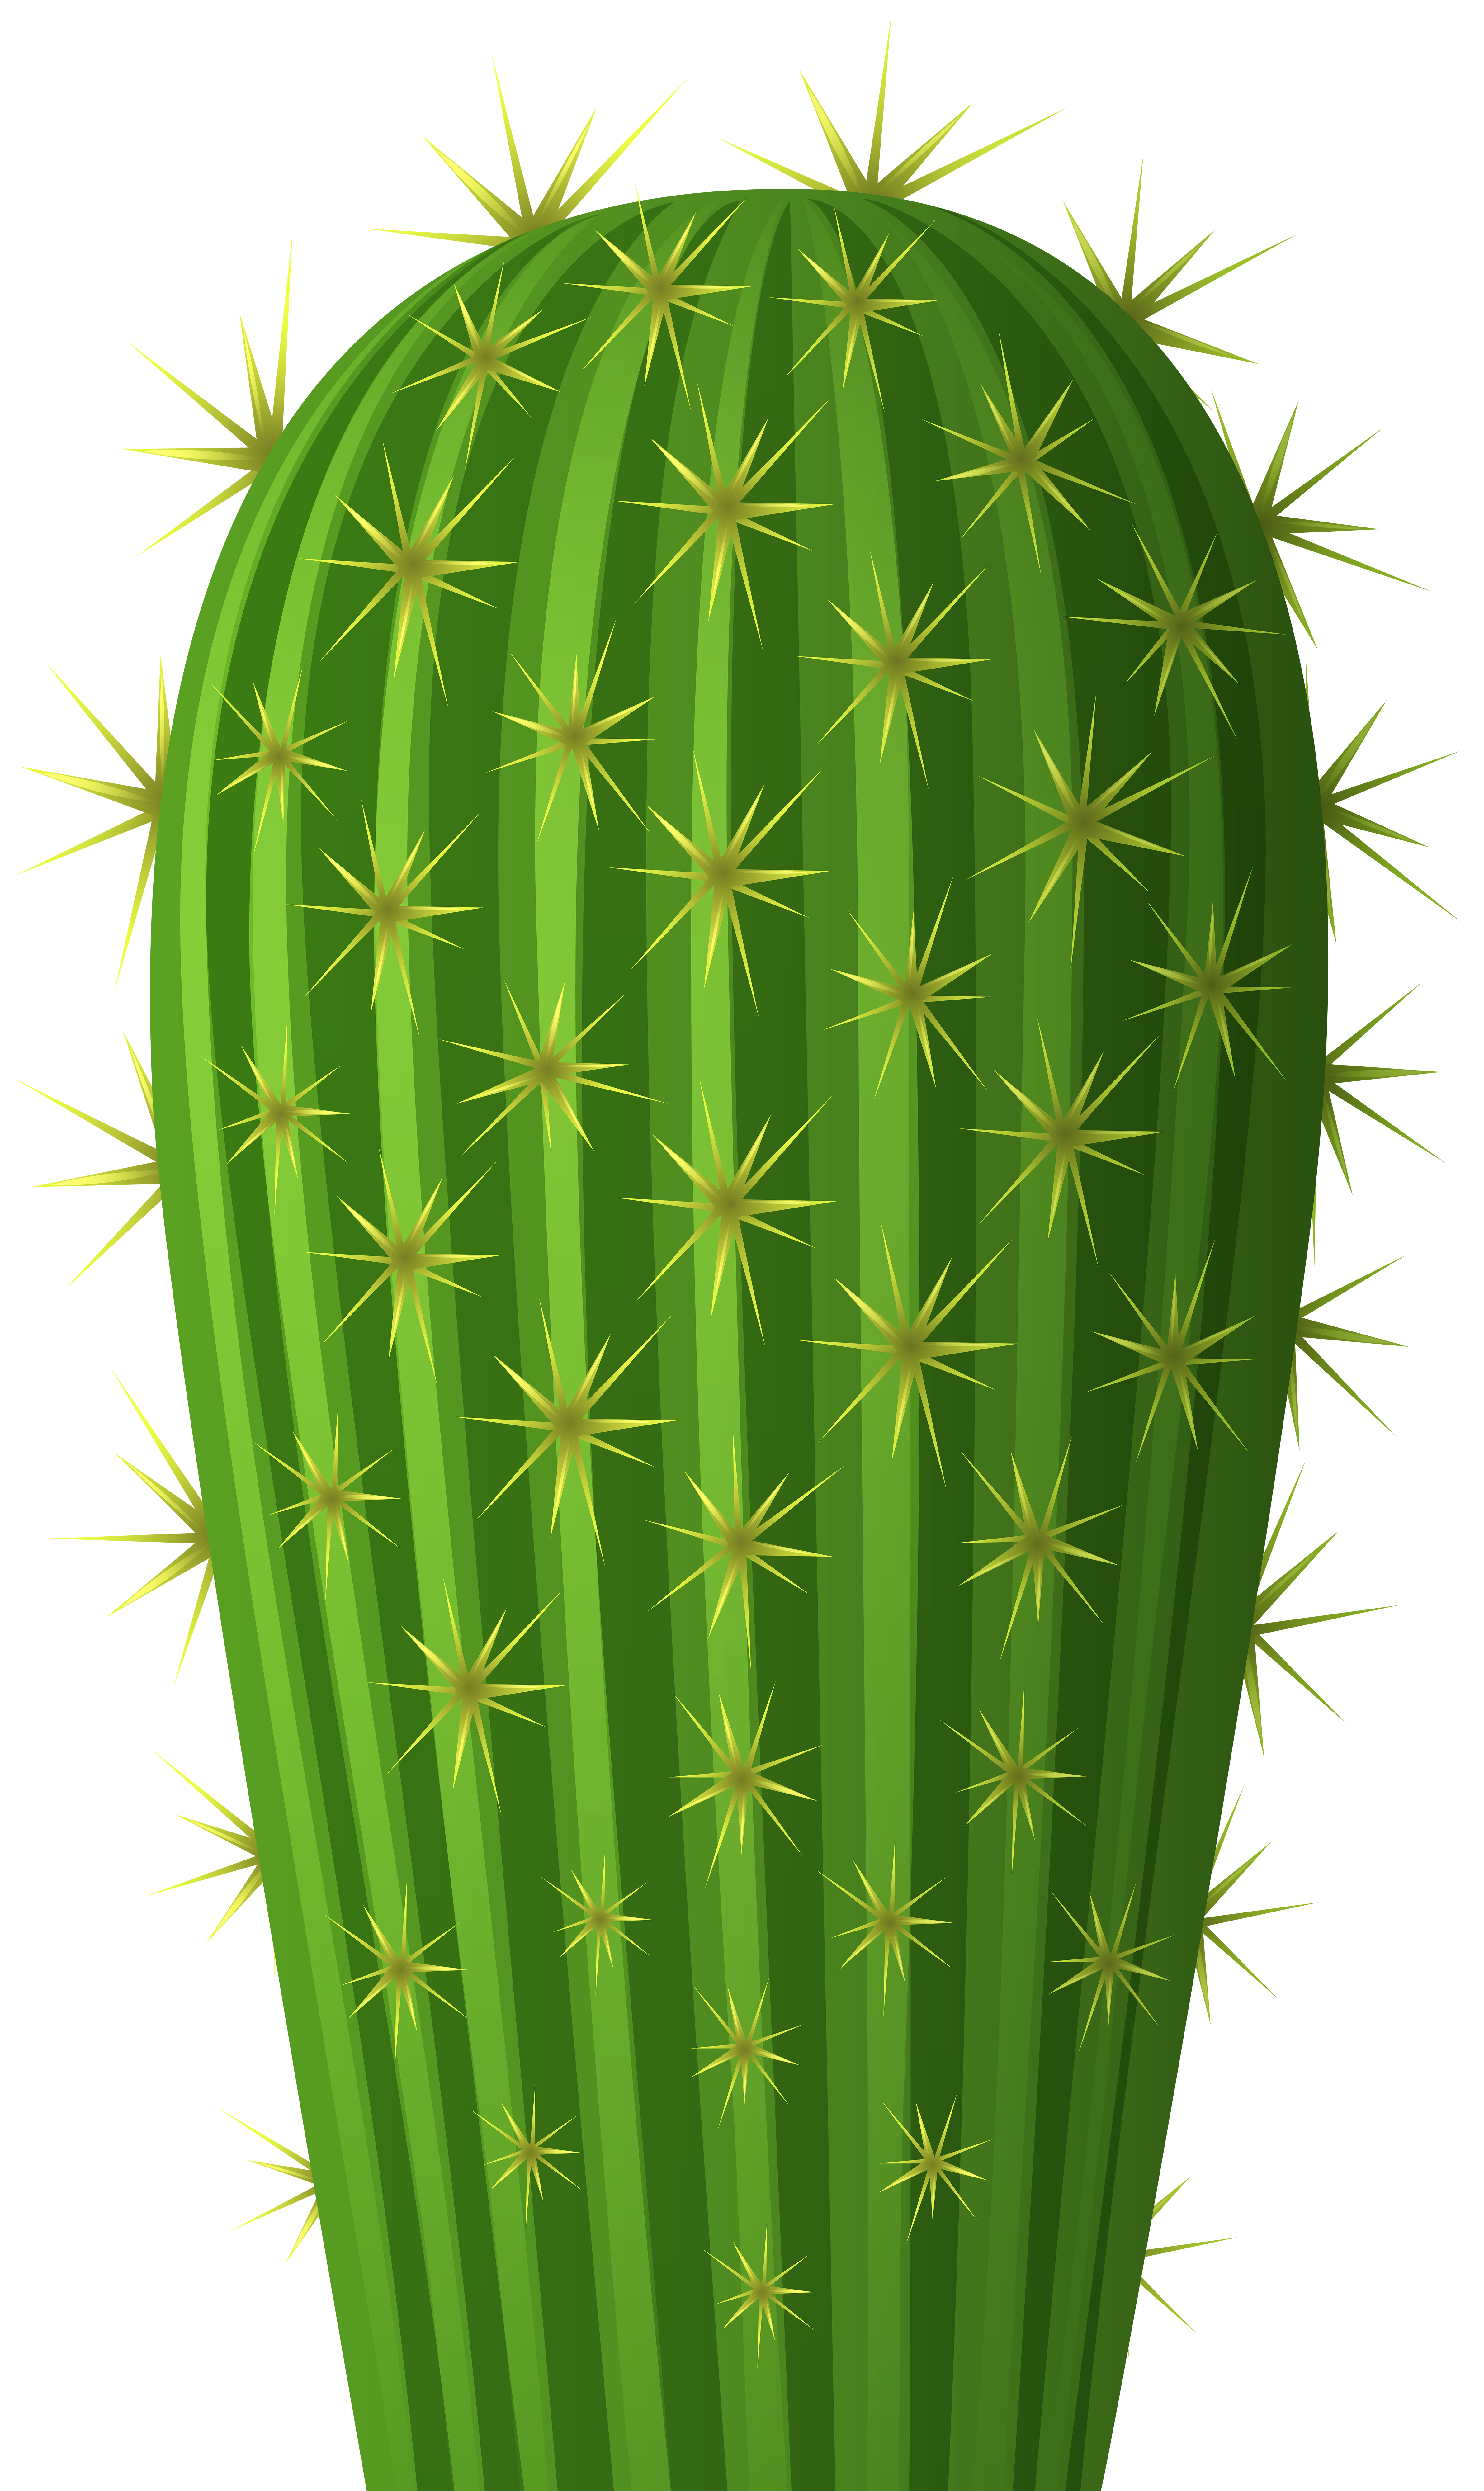 Cactus with flower clipart image black and white download Cactus PNG Clip Art Image | Gallery Yopriceville - High-Quality ... image black and white download